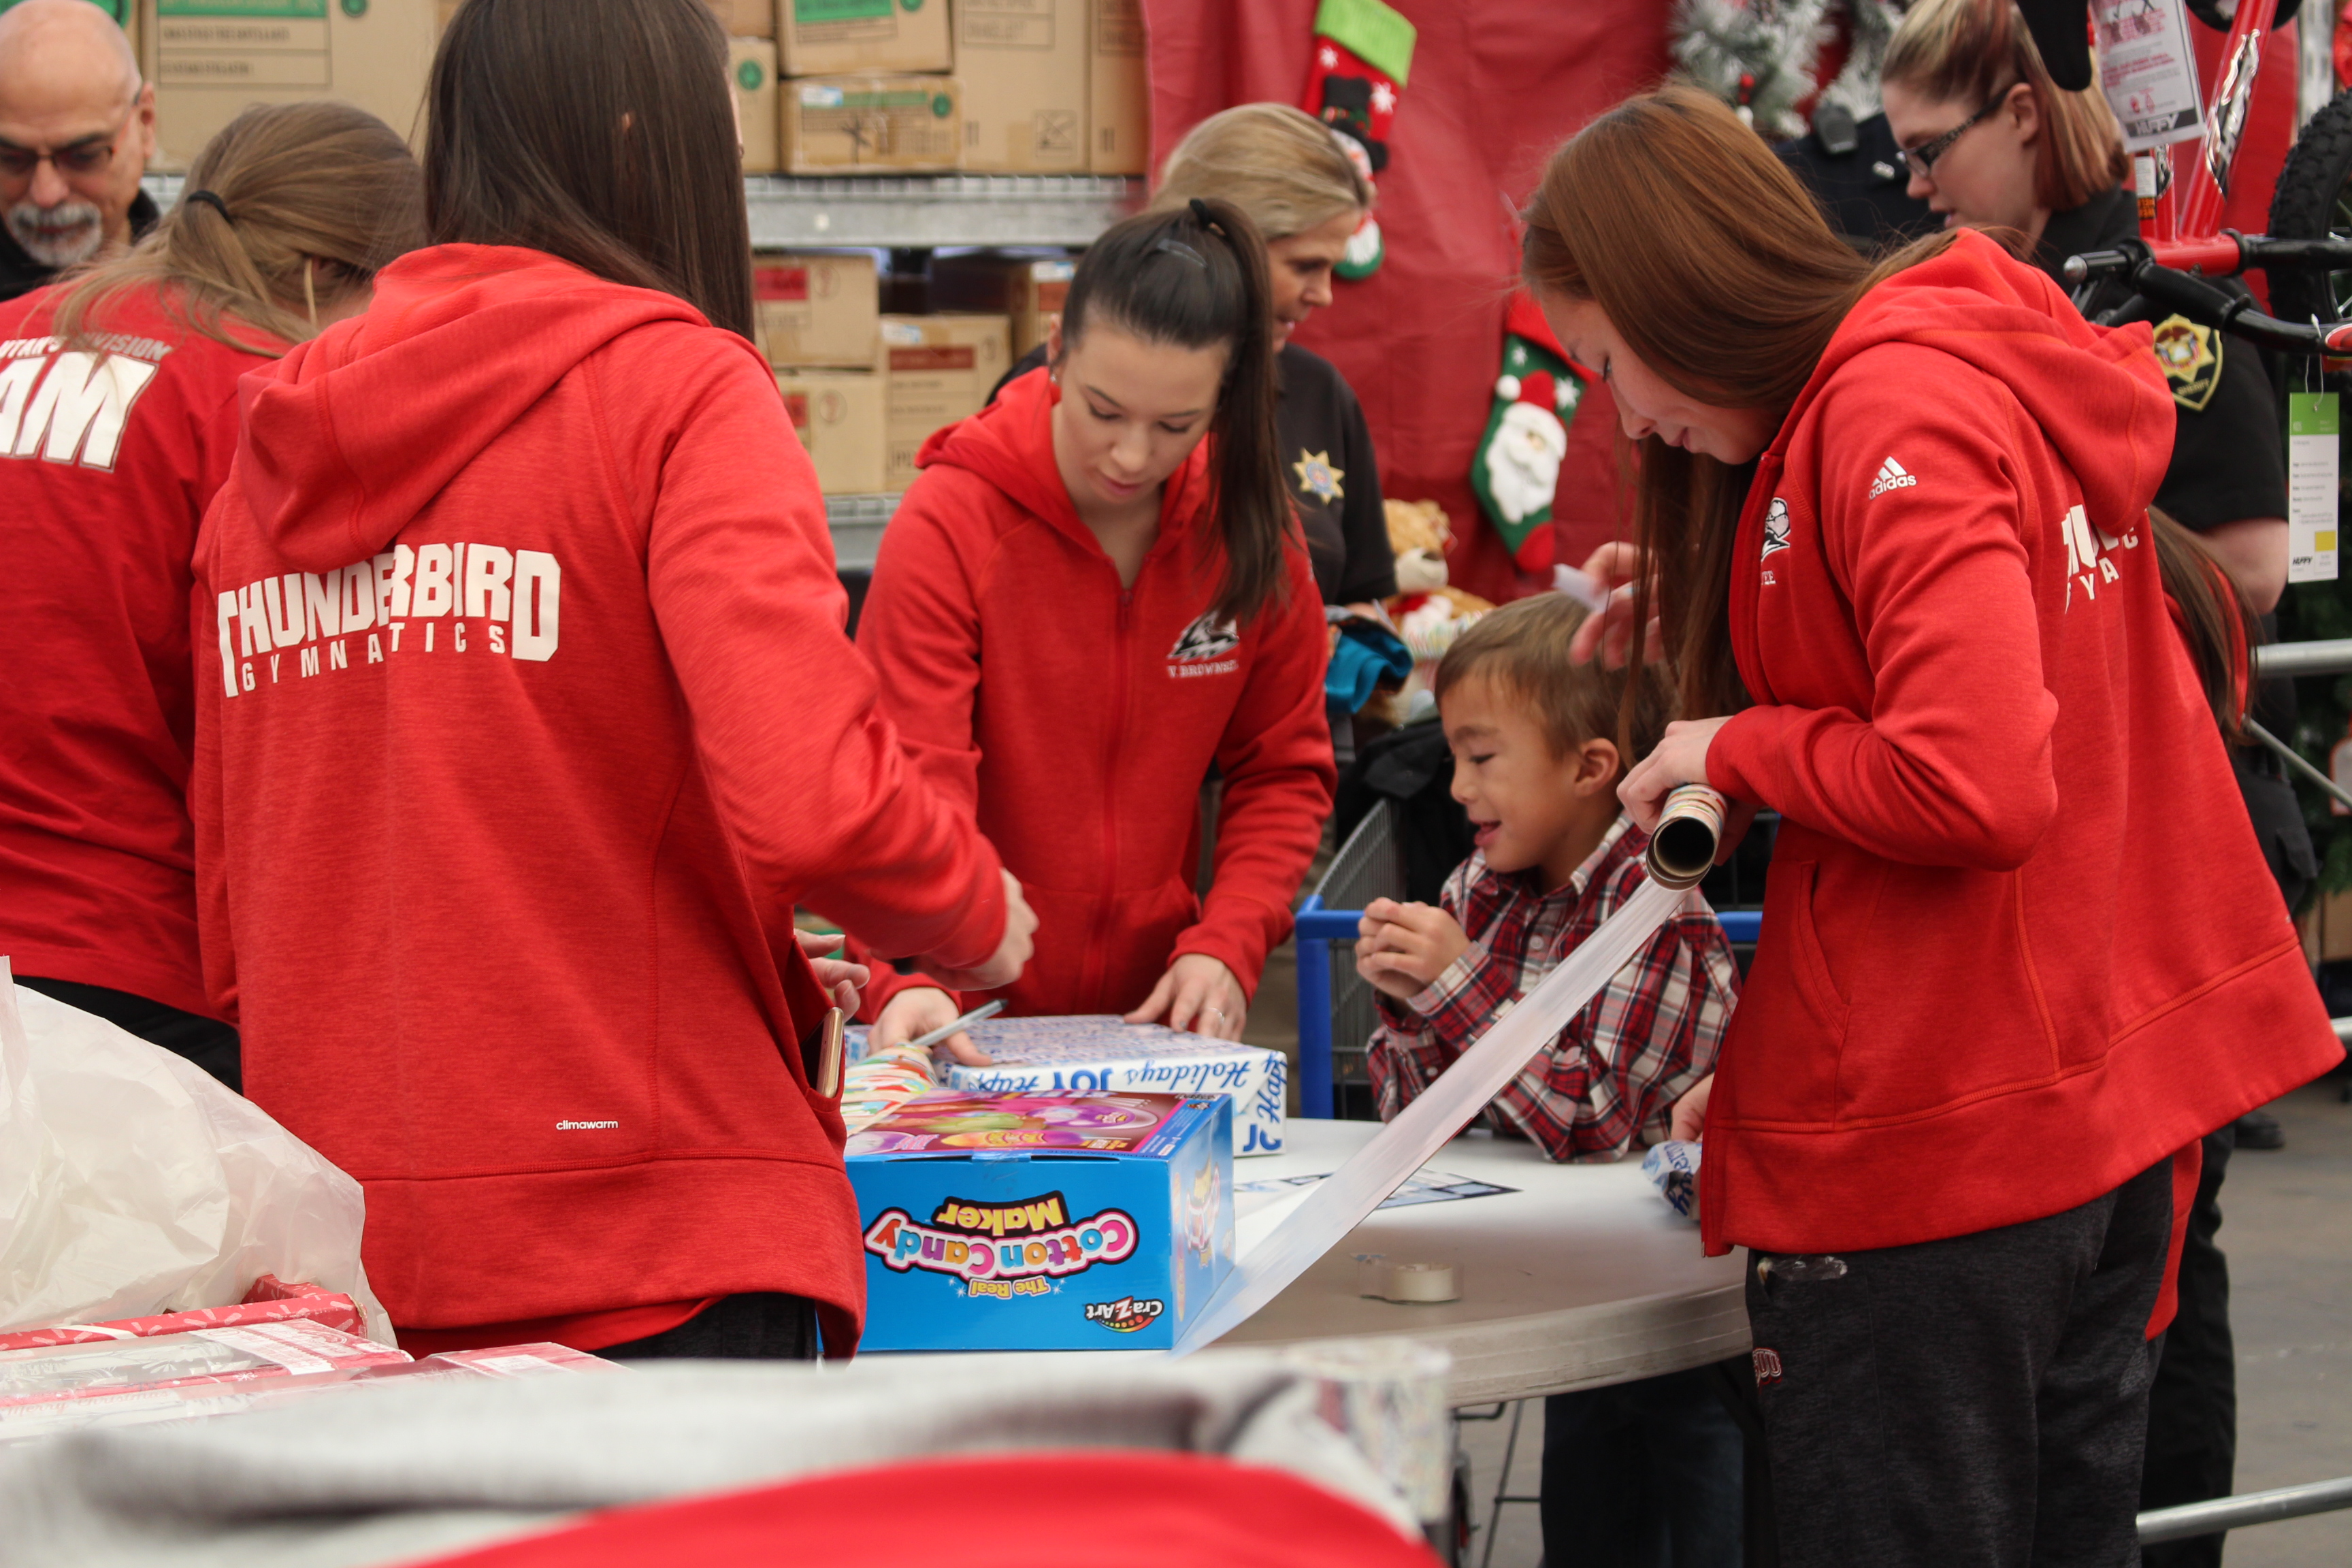 SUU Thunderbirds help wrap gifts Saturday at the Shop with a Cop event. St. George, Utah, Dec. 10, 2016 | Photo by Tracie Sullivan, St. George / Cedar City News